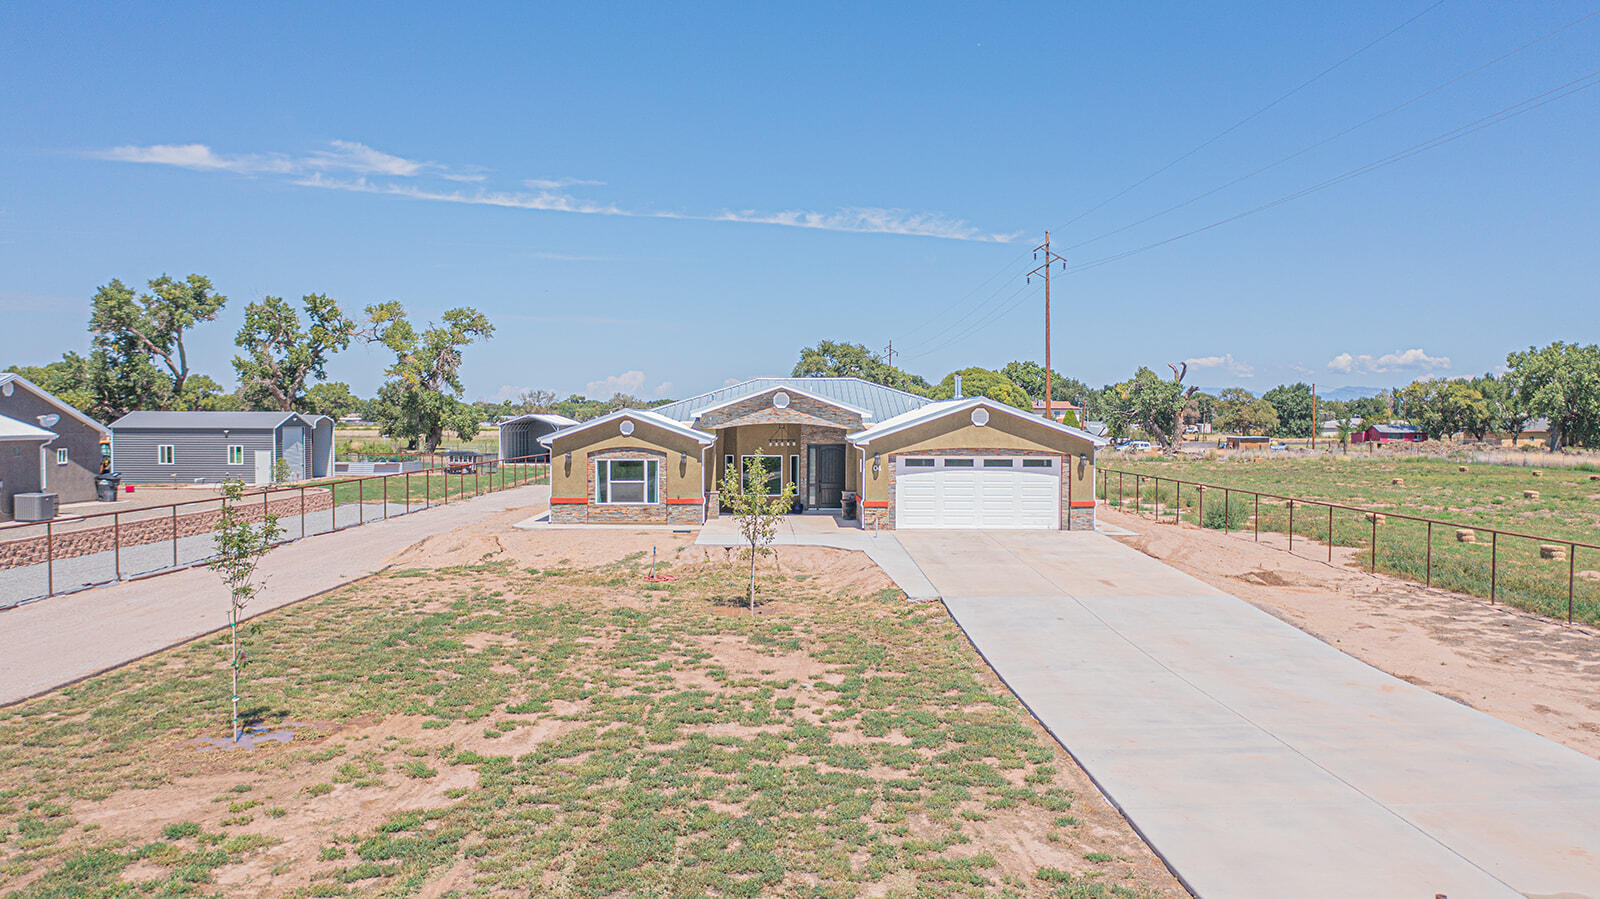 This gorgeous home is conveniently located right off of Interstate 25 in Belen, NM.  This quaint town is the best kept secret in New Mexico and this home is a beautiful representation of that.